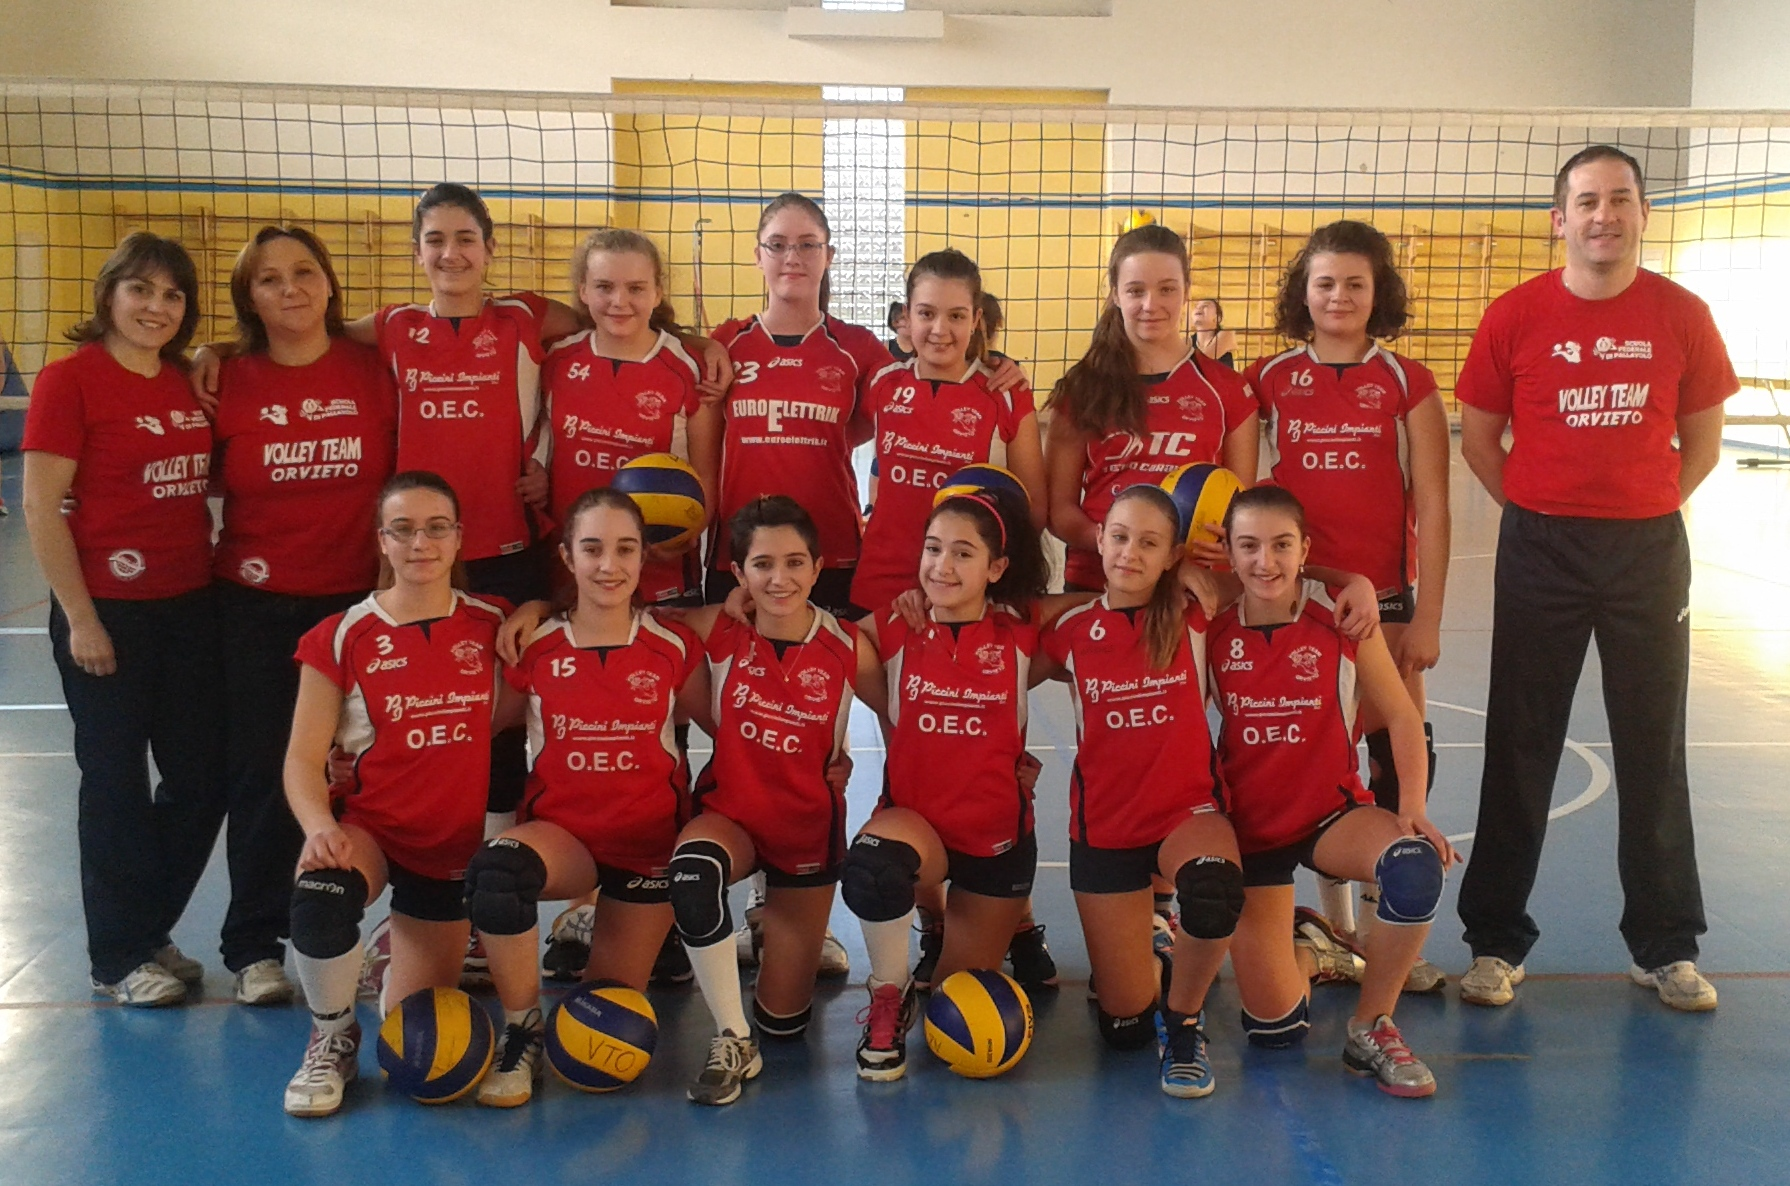 Il Volley Team Under 13 accede alla finale regionale